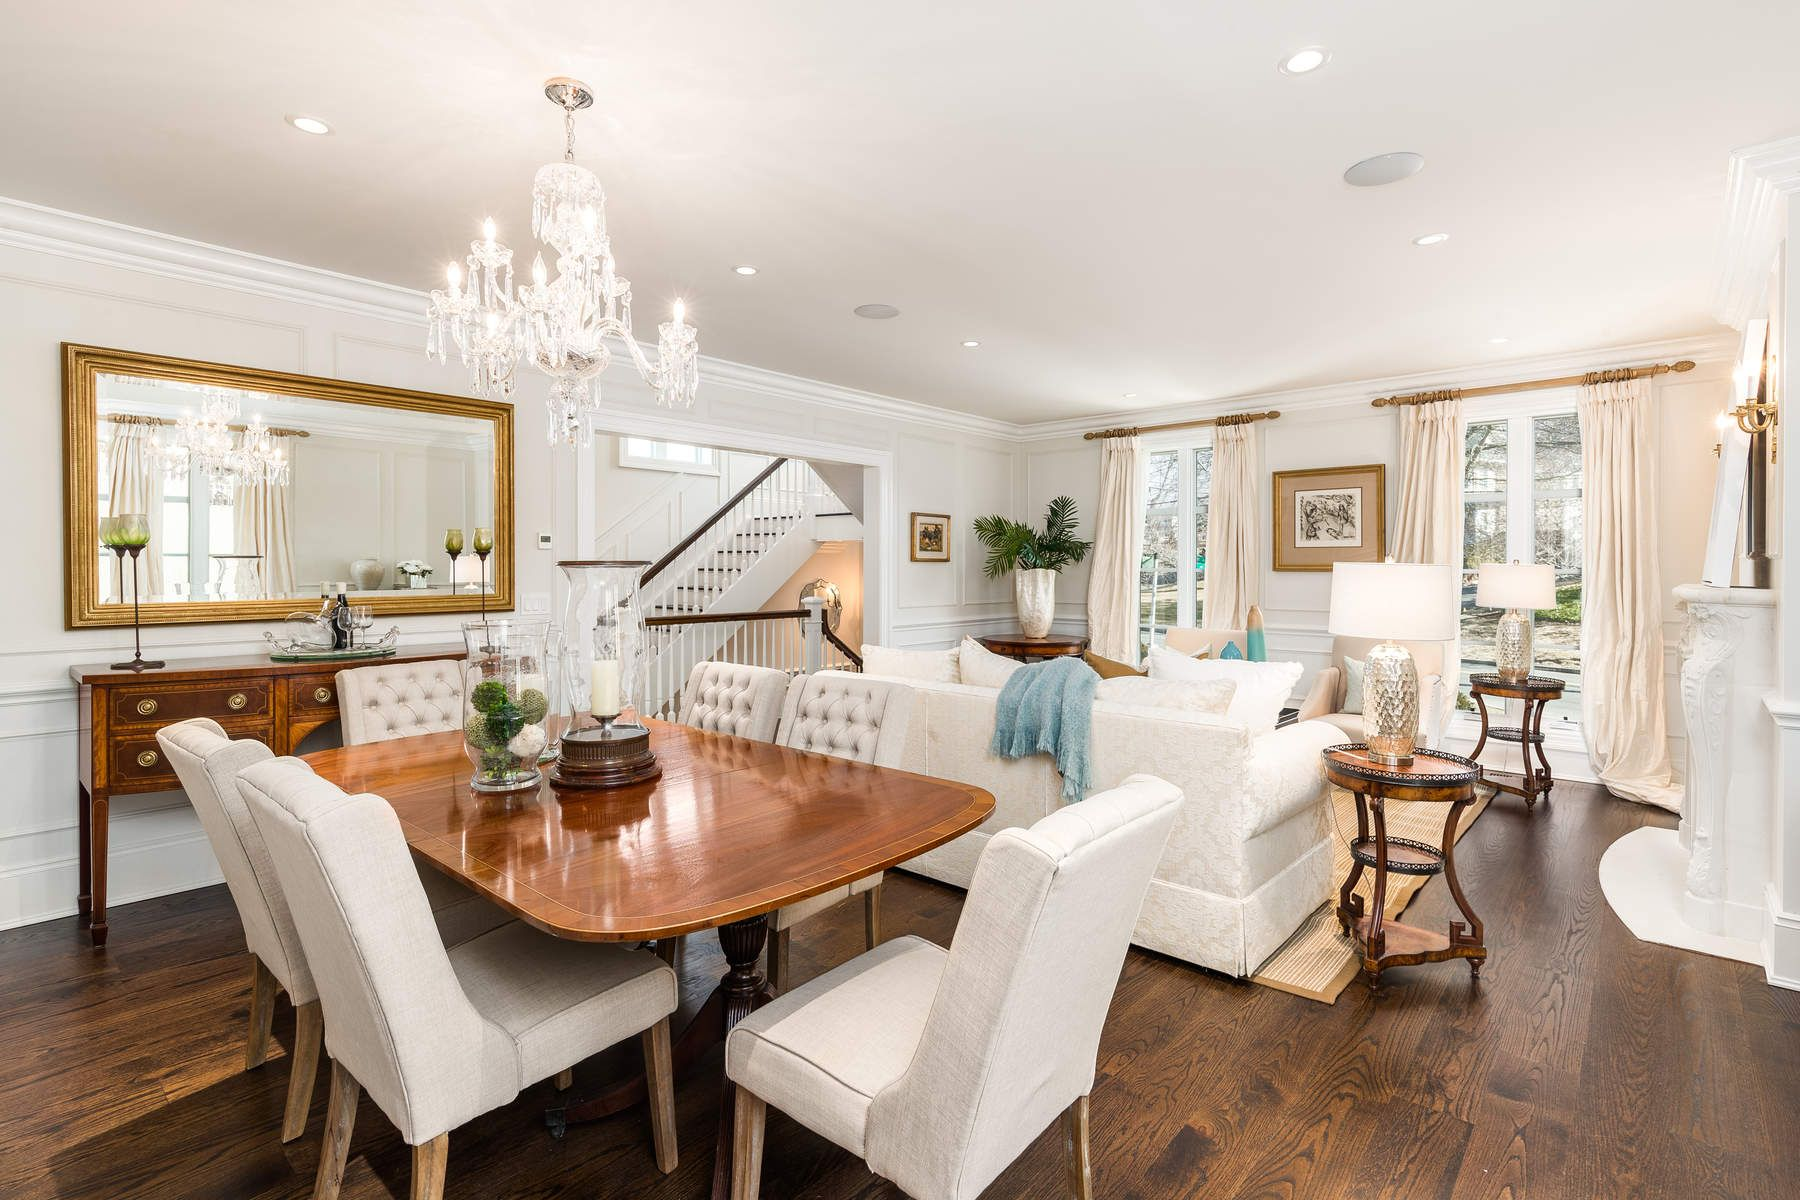 Single Family Home for Sale at Elegant In-Town Residence 138 Milbank Avenue Greenwich, Connecticut 06830 United States